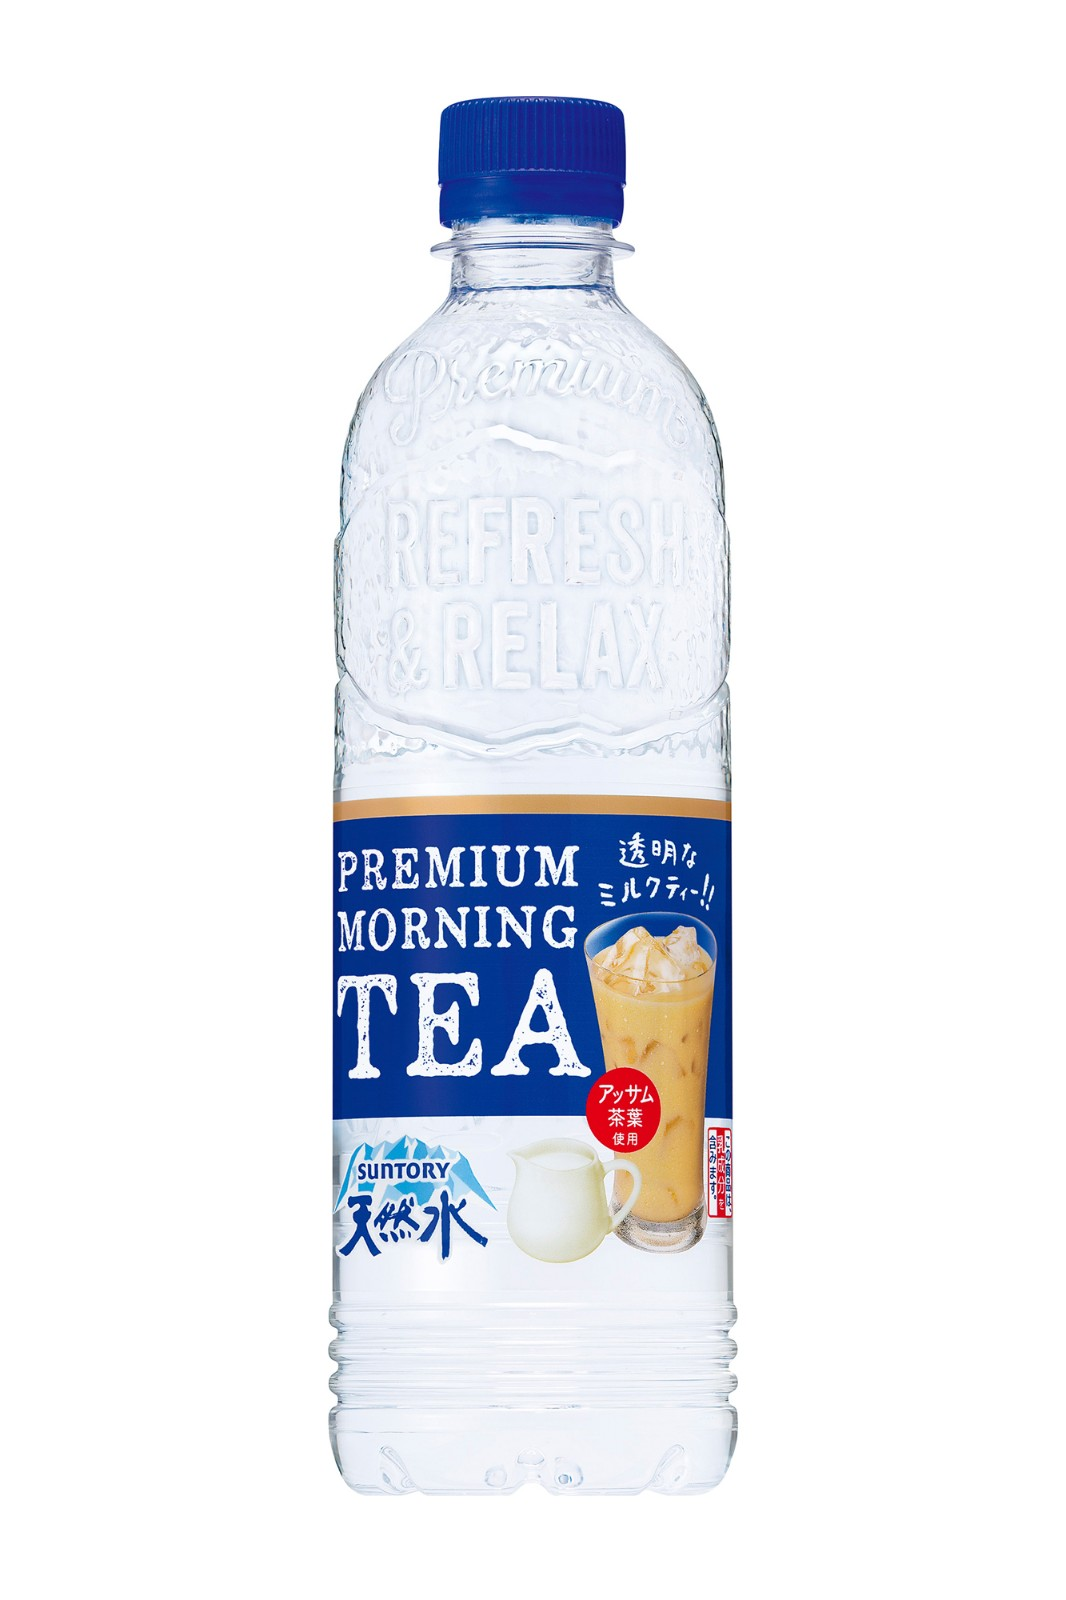 Suntory Morning Milk Tea